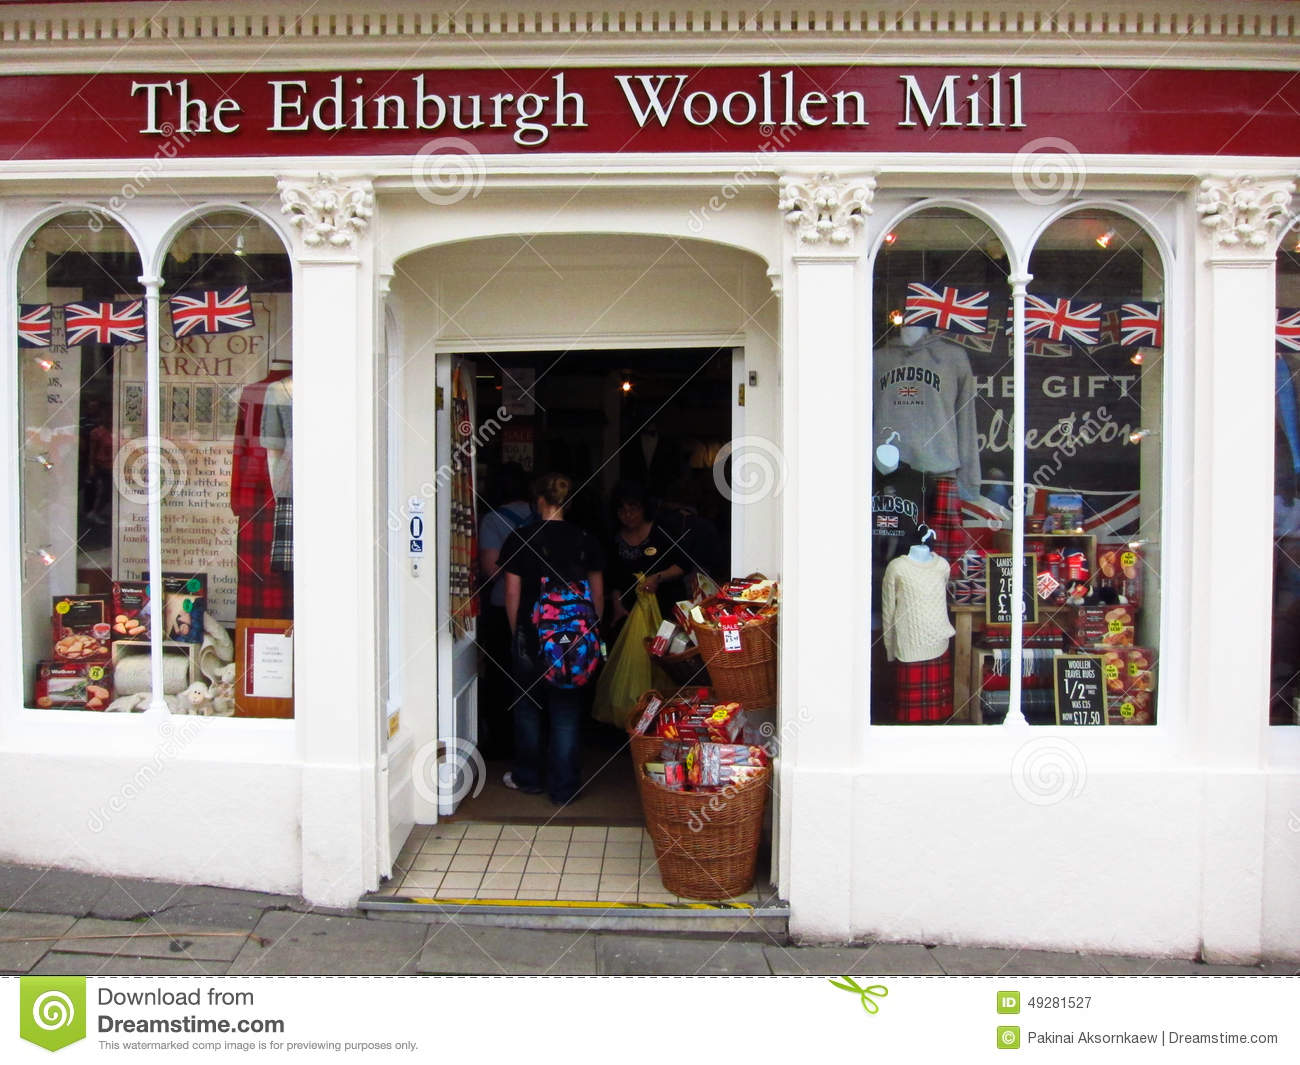 98 Woollen Mill Photos Free Royalty Free Stock Photos From Dreamstime